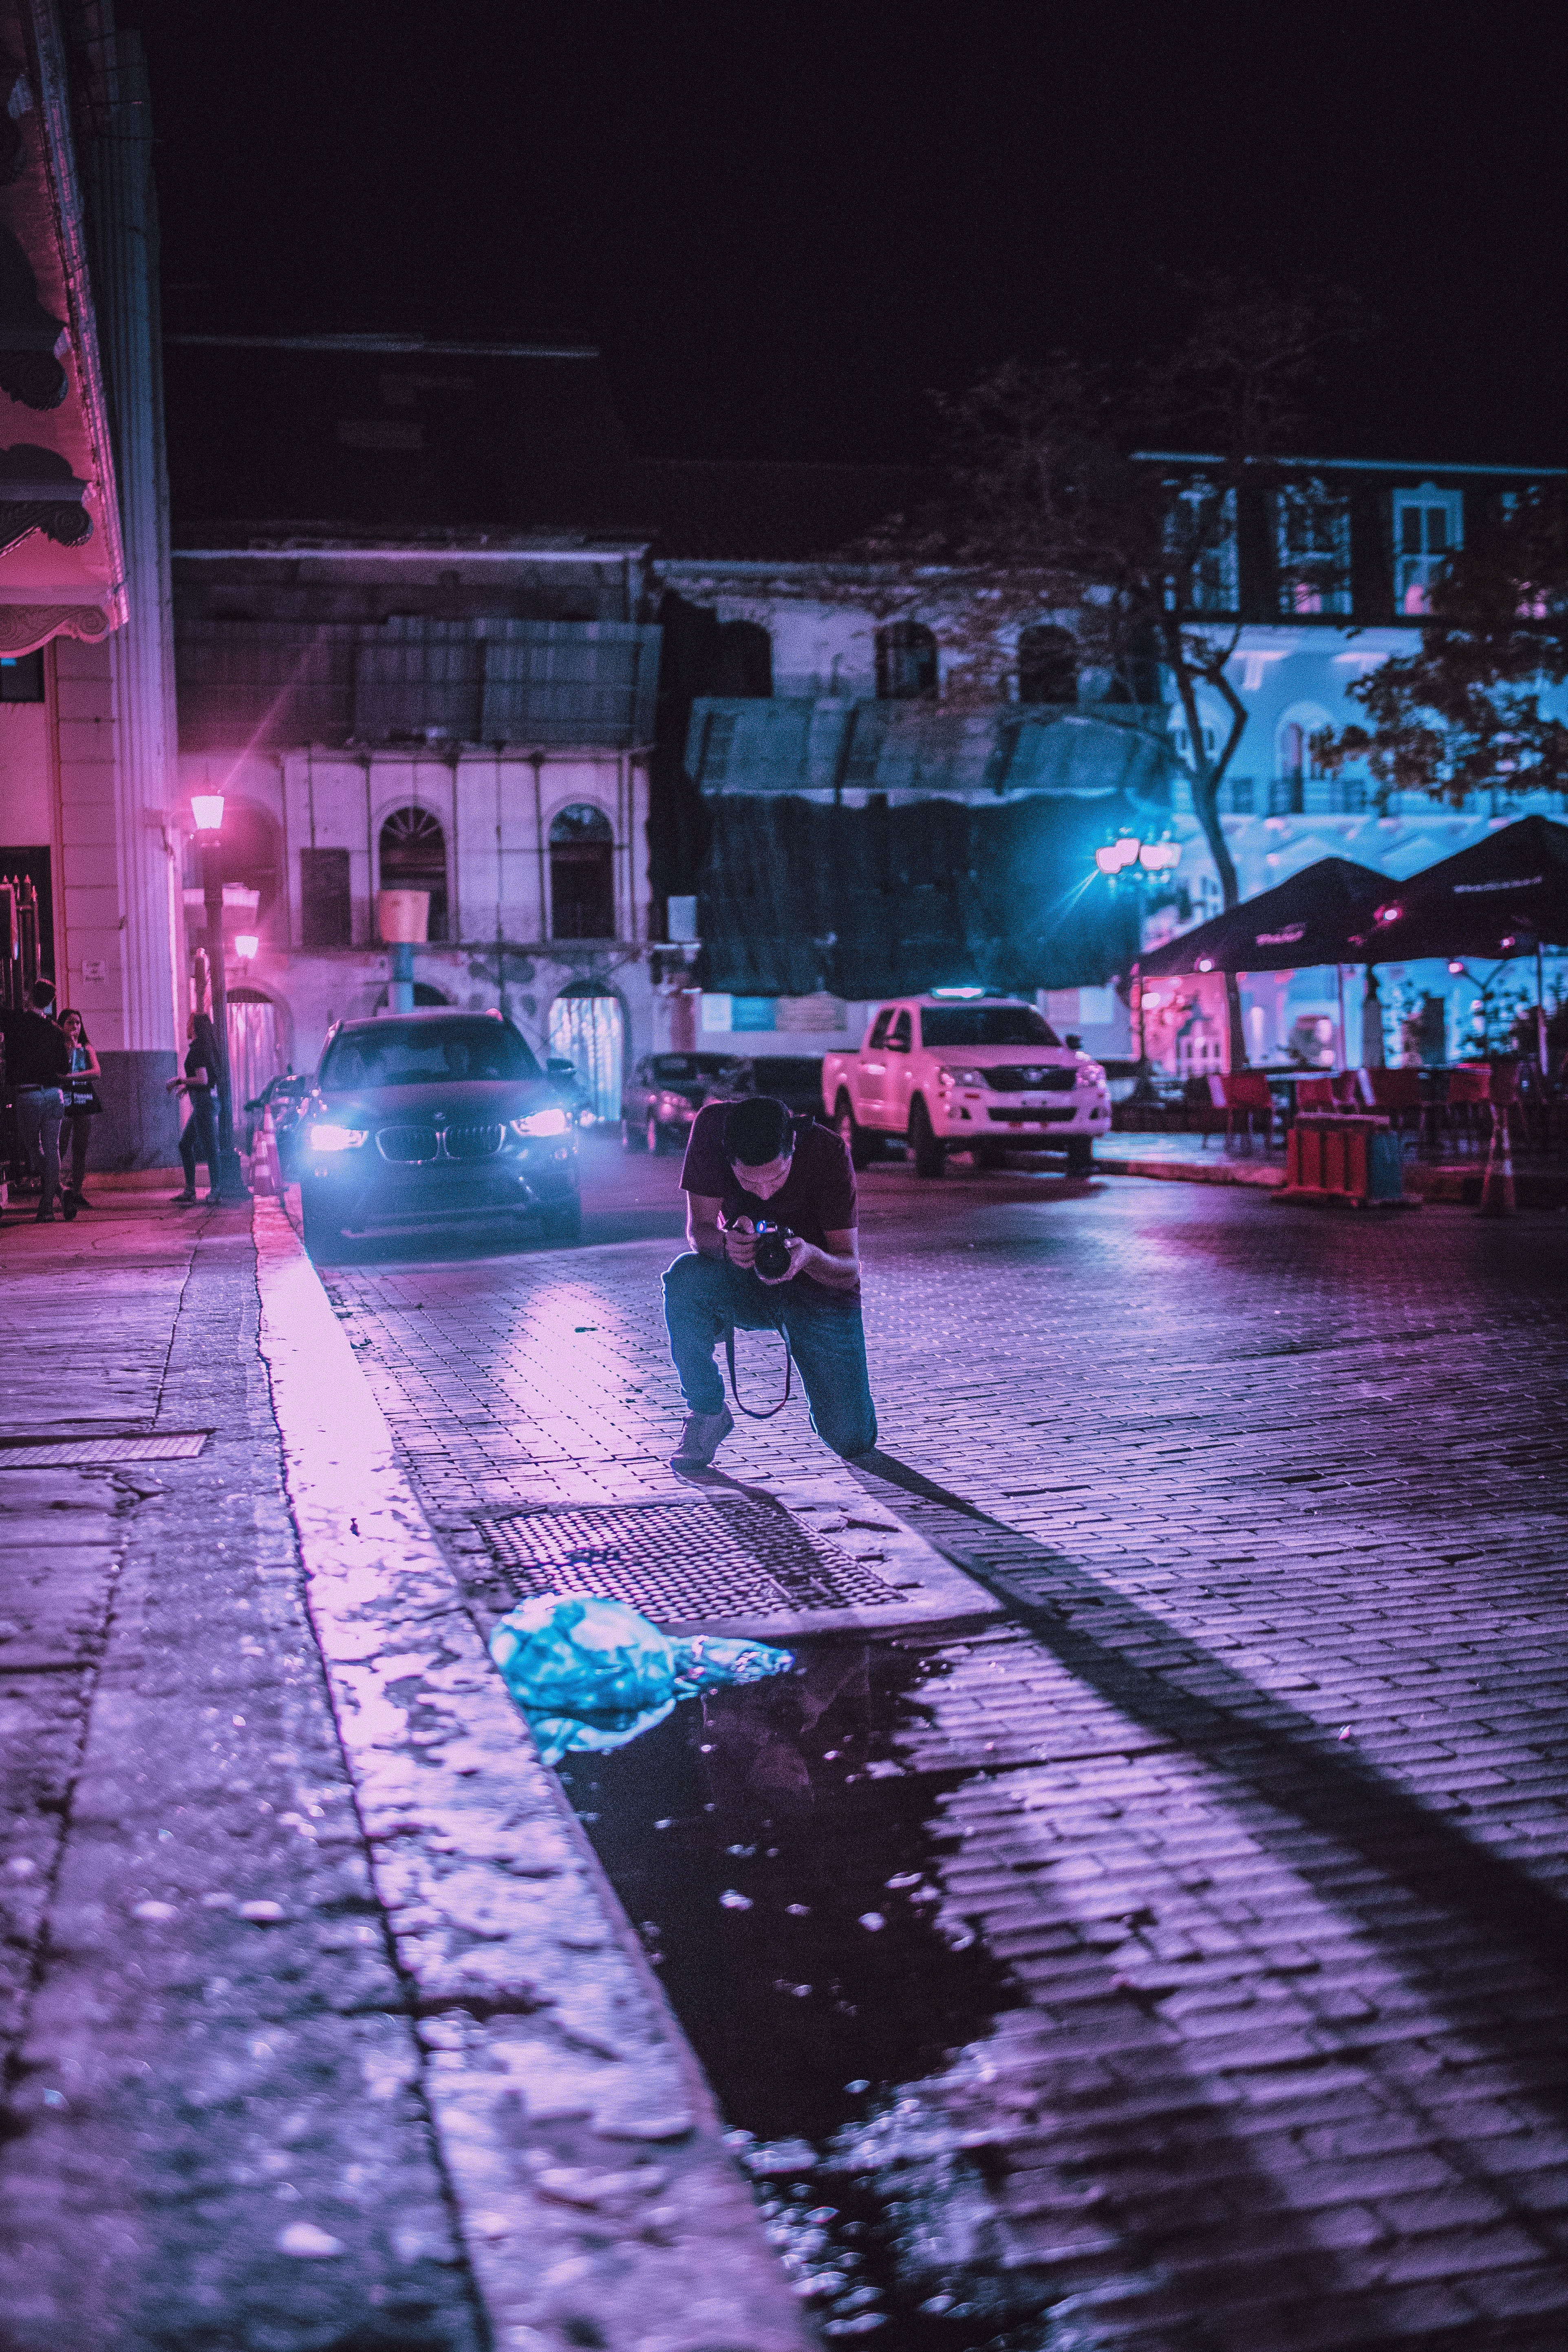 Person Taking Photo of Ground in Front of Vehicle during Night